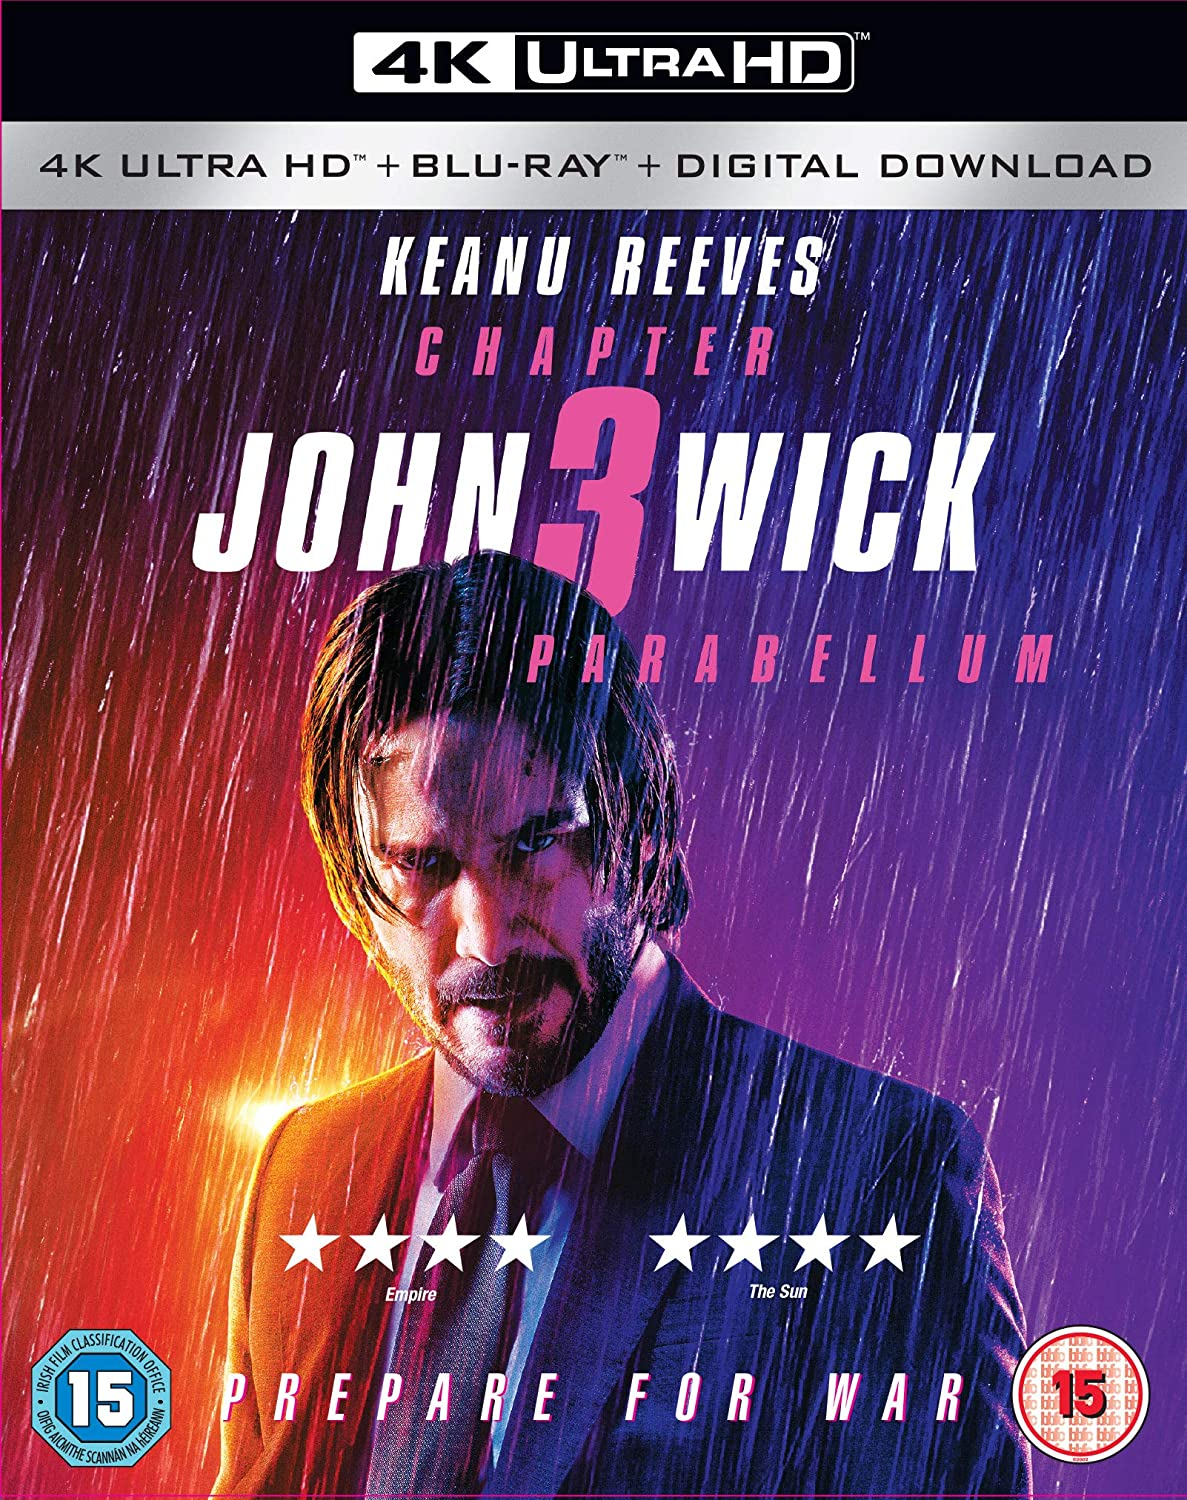 John Wick: Chapter 3 - Parabellum 4K Blu-ray 2019: Amazon.co.uk ...